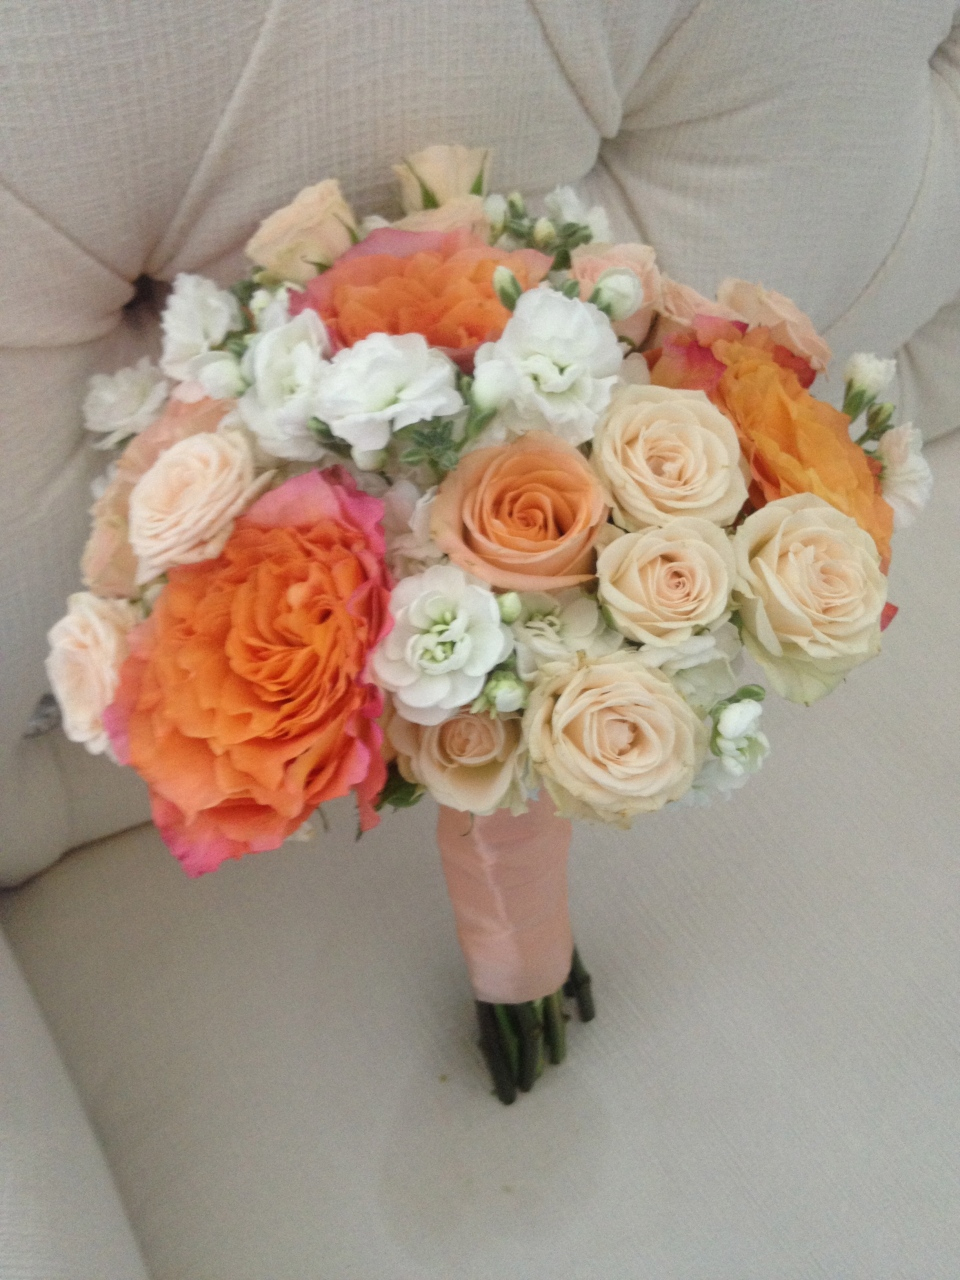 Coral, Peach and Ivory Bouquets of Cabbage Roses, Spray Roses and Stock Flower